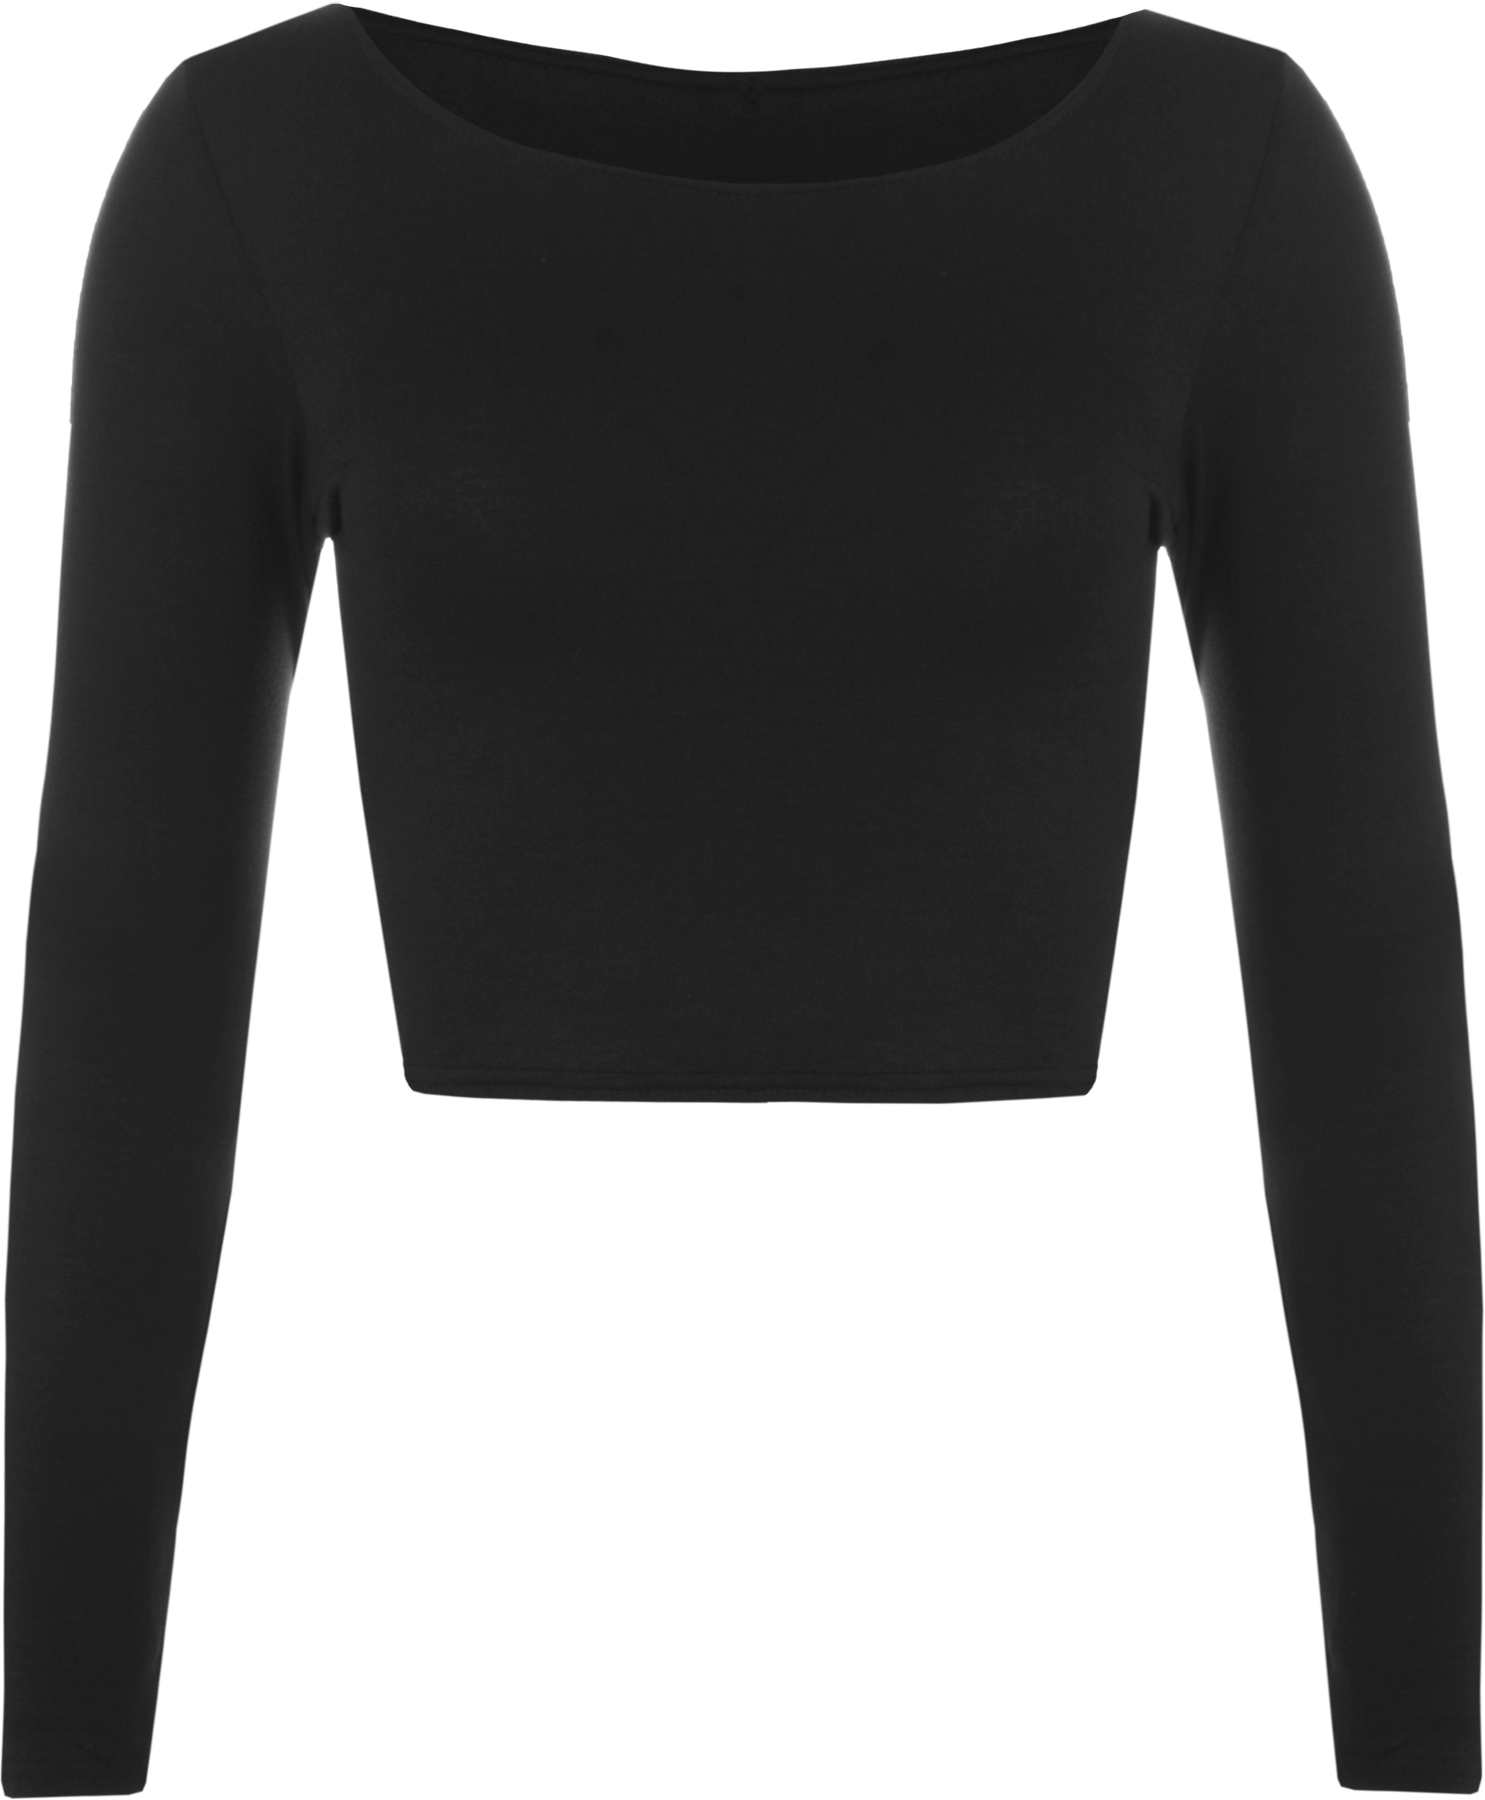 Find long sleeve cropped shirts at ShopStyle. Shop the latest collection of long sleeve cropped shirts from the most popular stores - all in one.